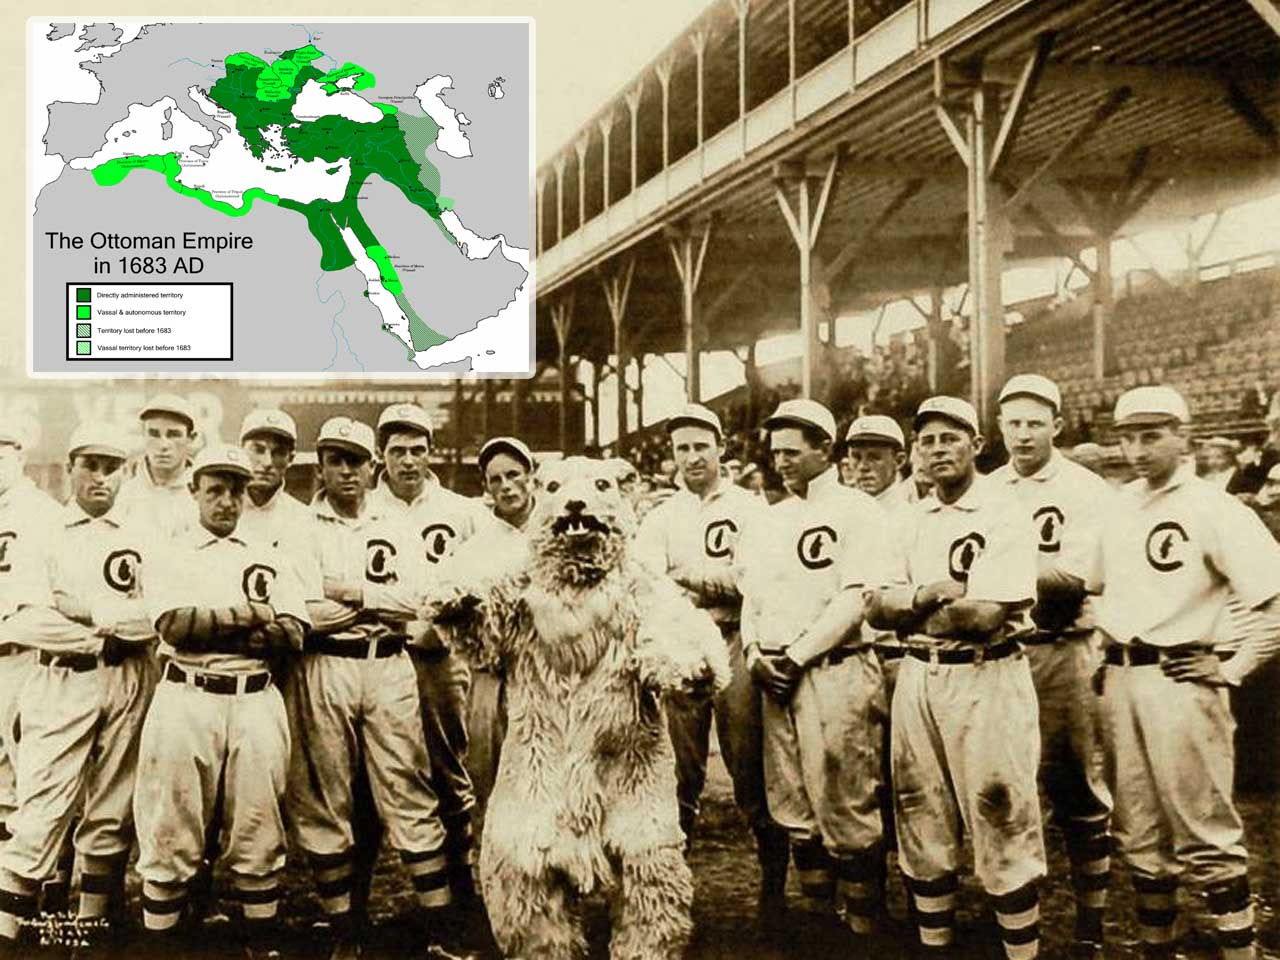 The Ottoman Empire Existed The Second To Last Time The Chicago Cubs Won The World Series (1908)